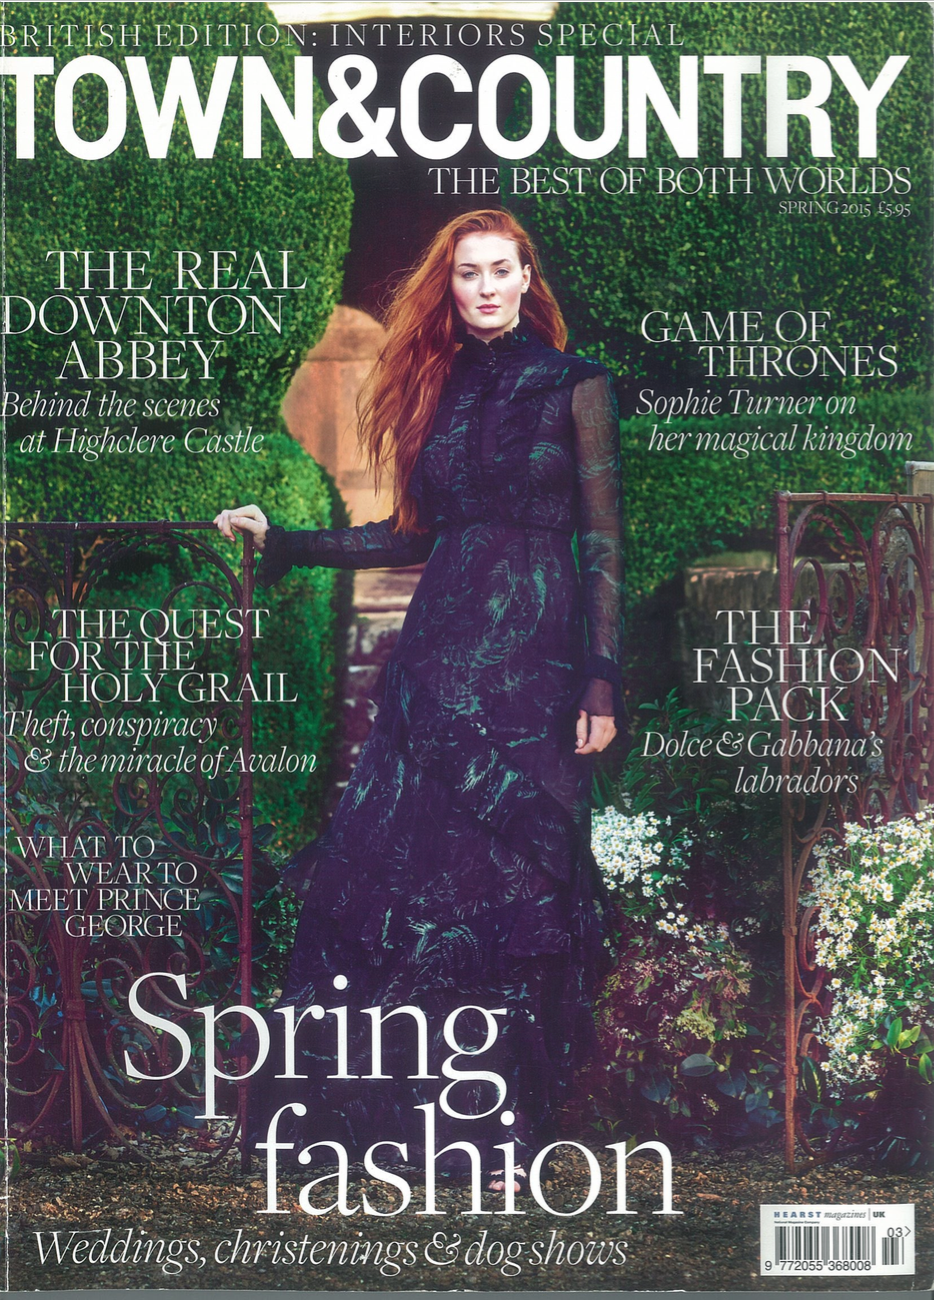 Town & Country Interiors Special